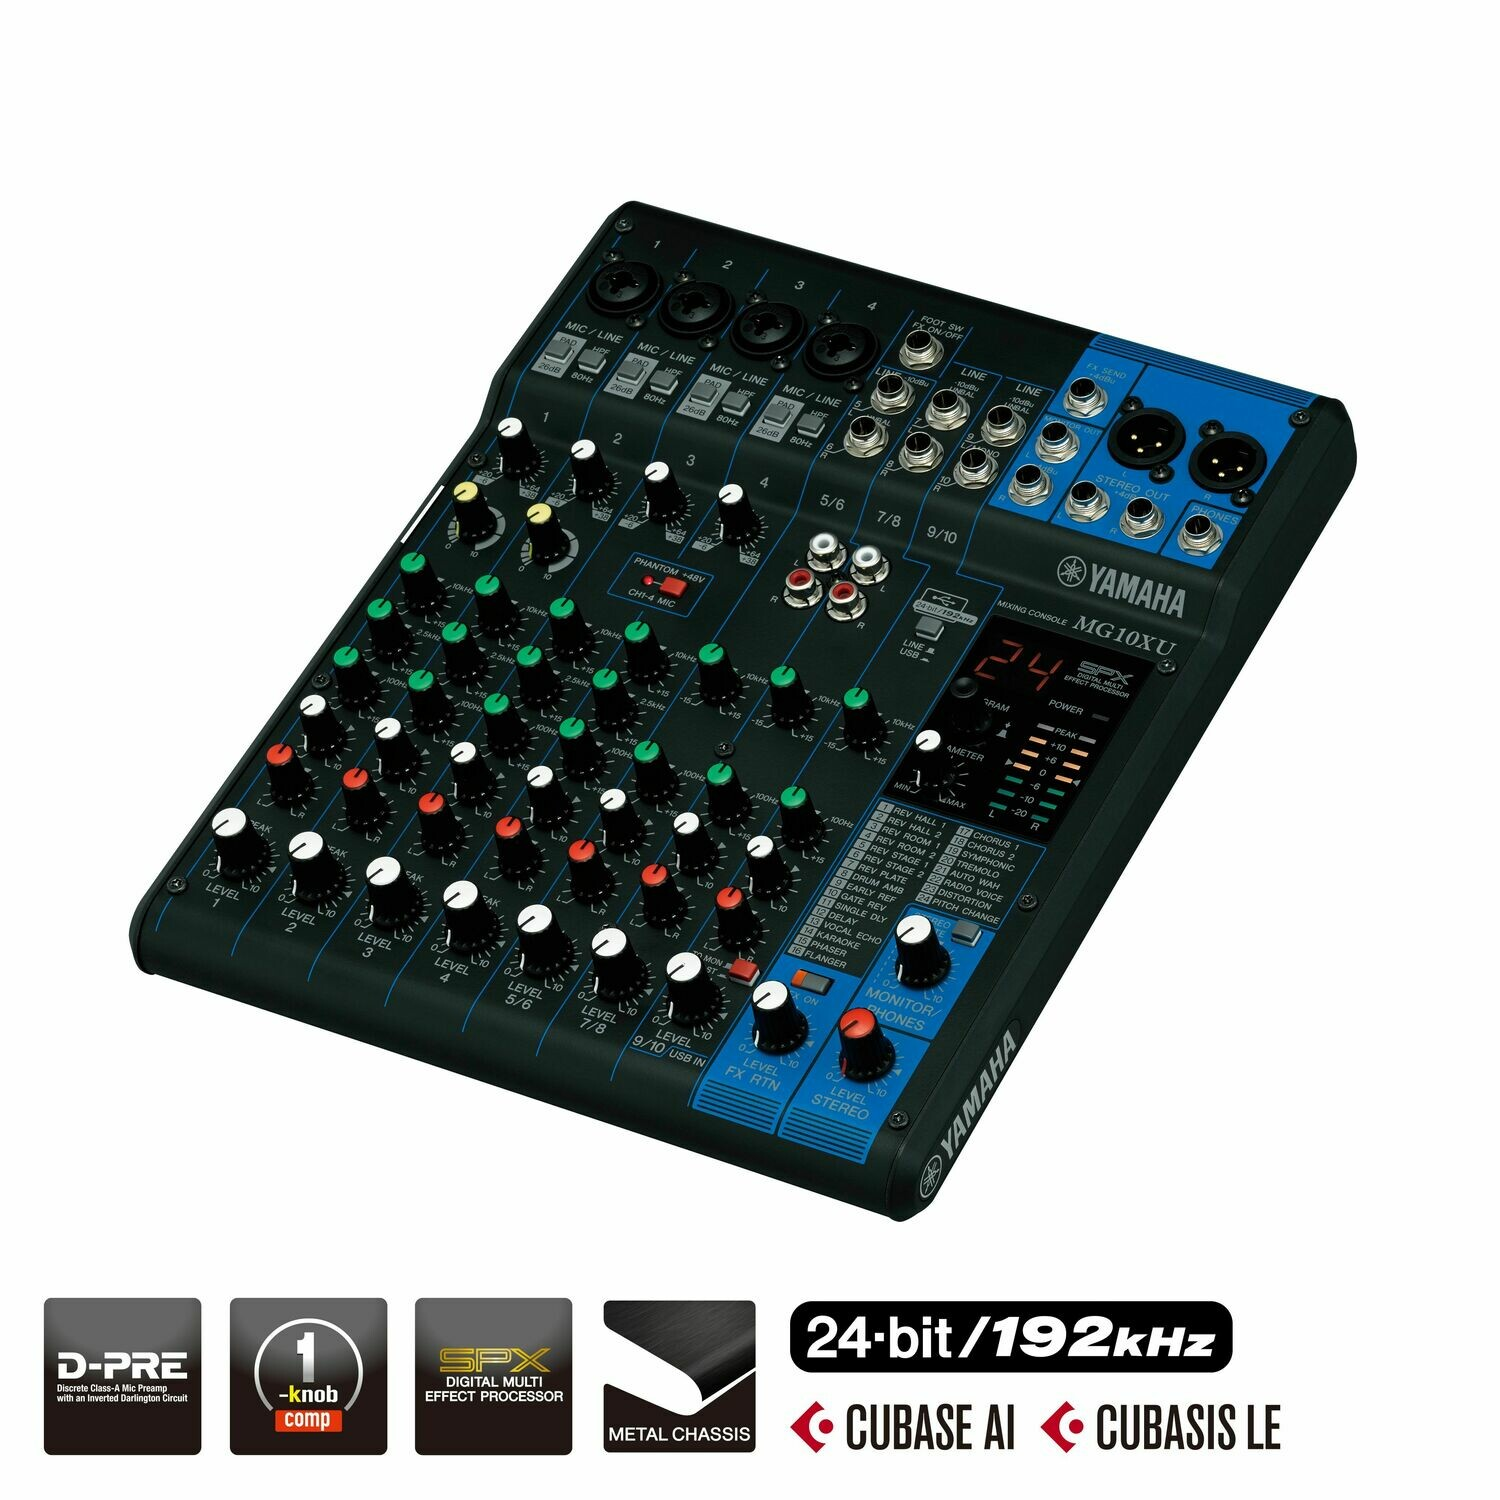 Yamaha MG10XU mixer (USB and FX function)